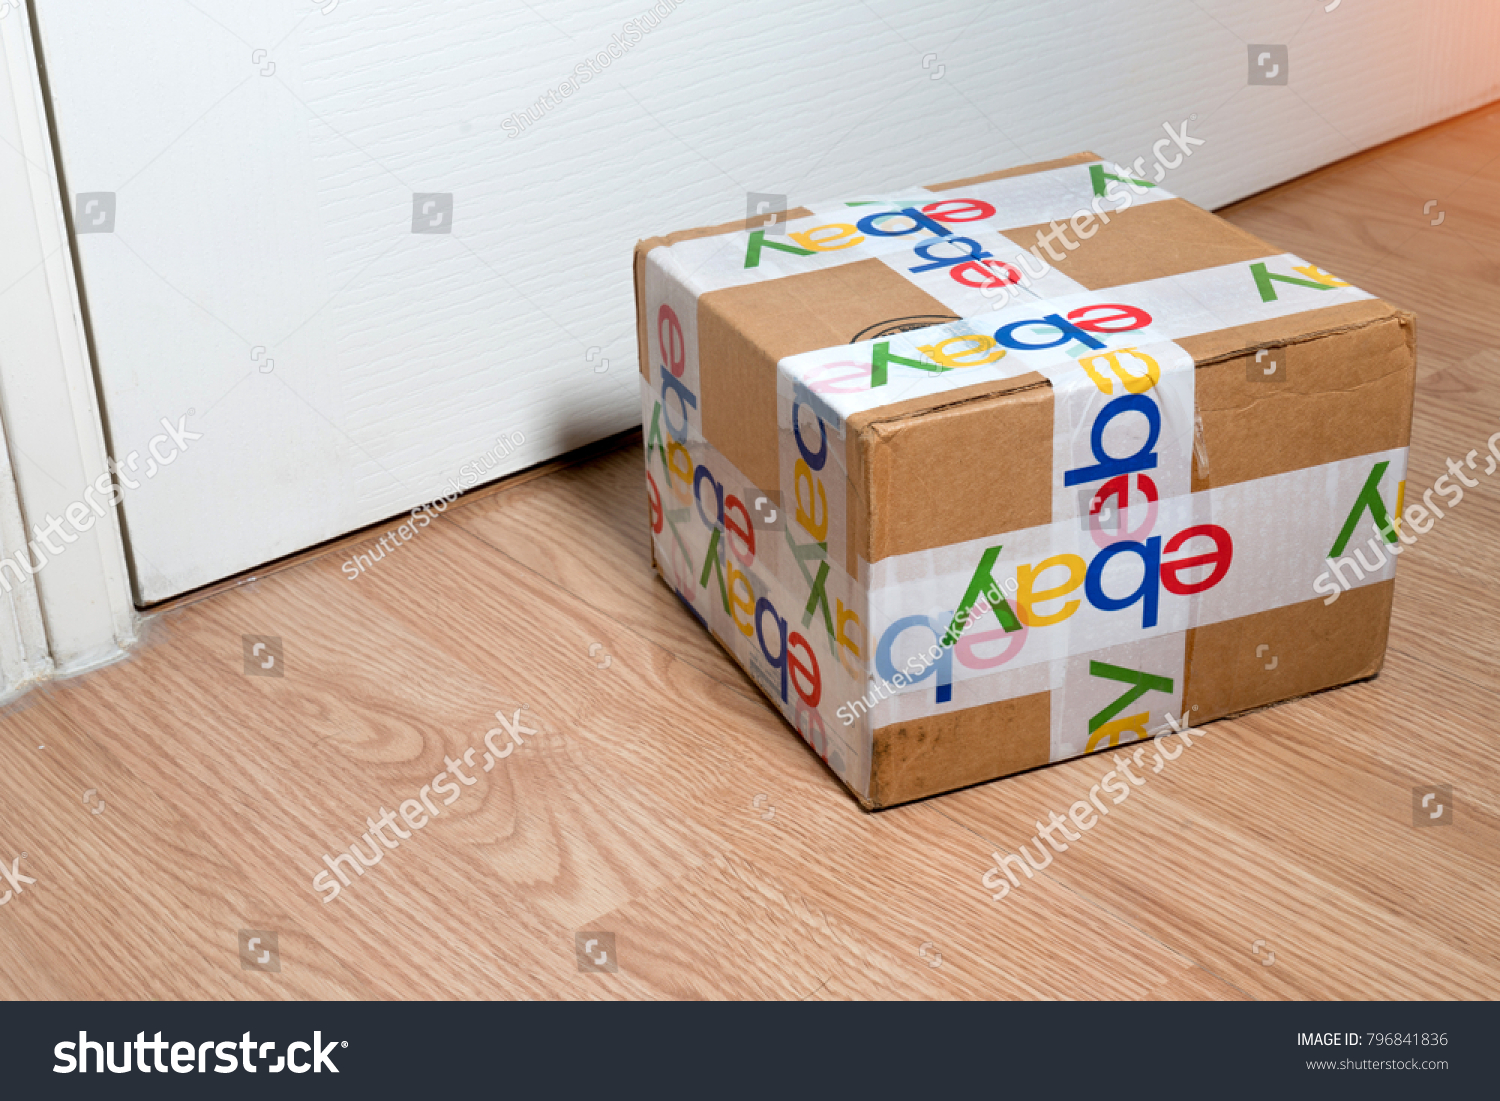 Bangkok Thailand 16 2018 Brown Paper Stock Photo Edit Now Circuit Breaker Labels Ebay Box Packaging With Security Scotch Tape